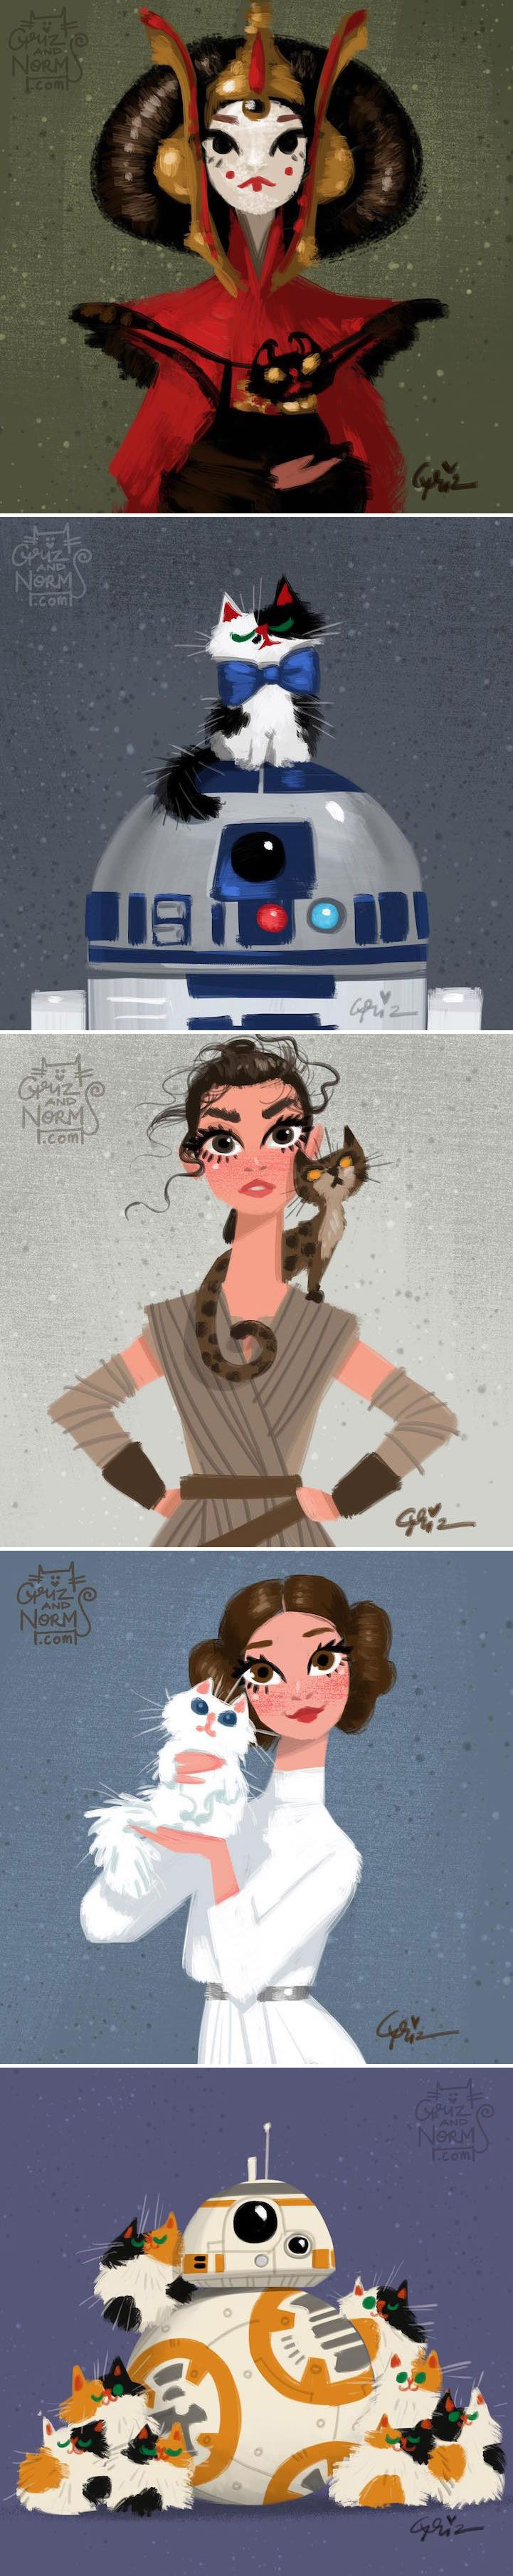 Disney animators Griz and Norm Lemay used their latest series of illustrations to combine two of their favorite things: Star Wars and cats. While this may seem like a highly unusual combination, the artists masterfully managed to pick out the perfect feline companion for each of their Star Wars characters.